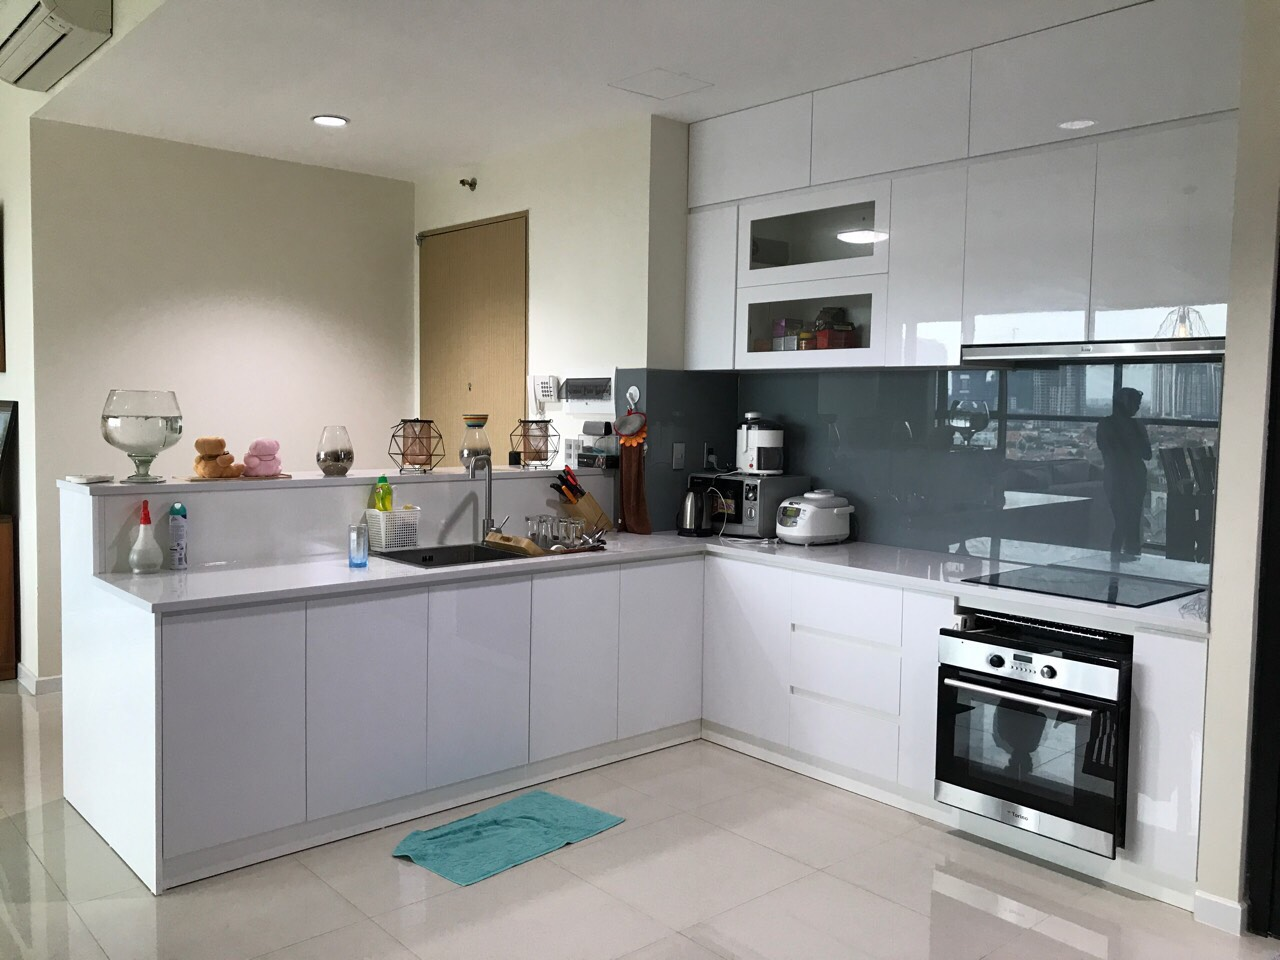 ascent apartment for rent in district 2 hcmc D217055 (20)